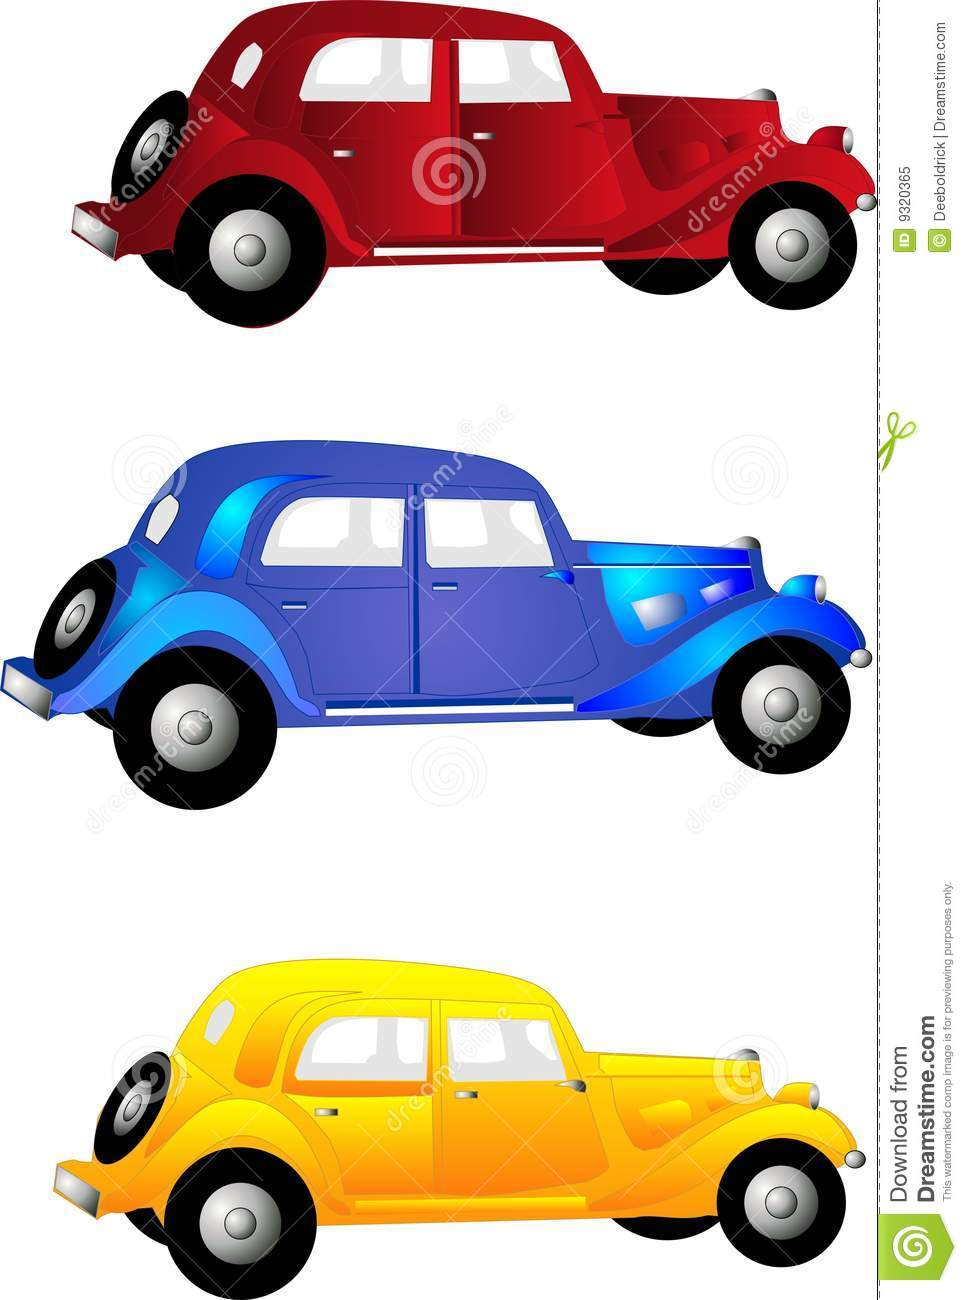 3 vintage cars stock vector illustration of automobile 9320365 rh dreamstime com old car clipart black and white vintage race car clipart